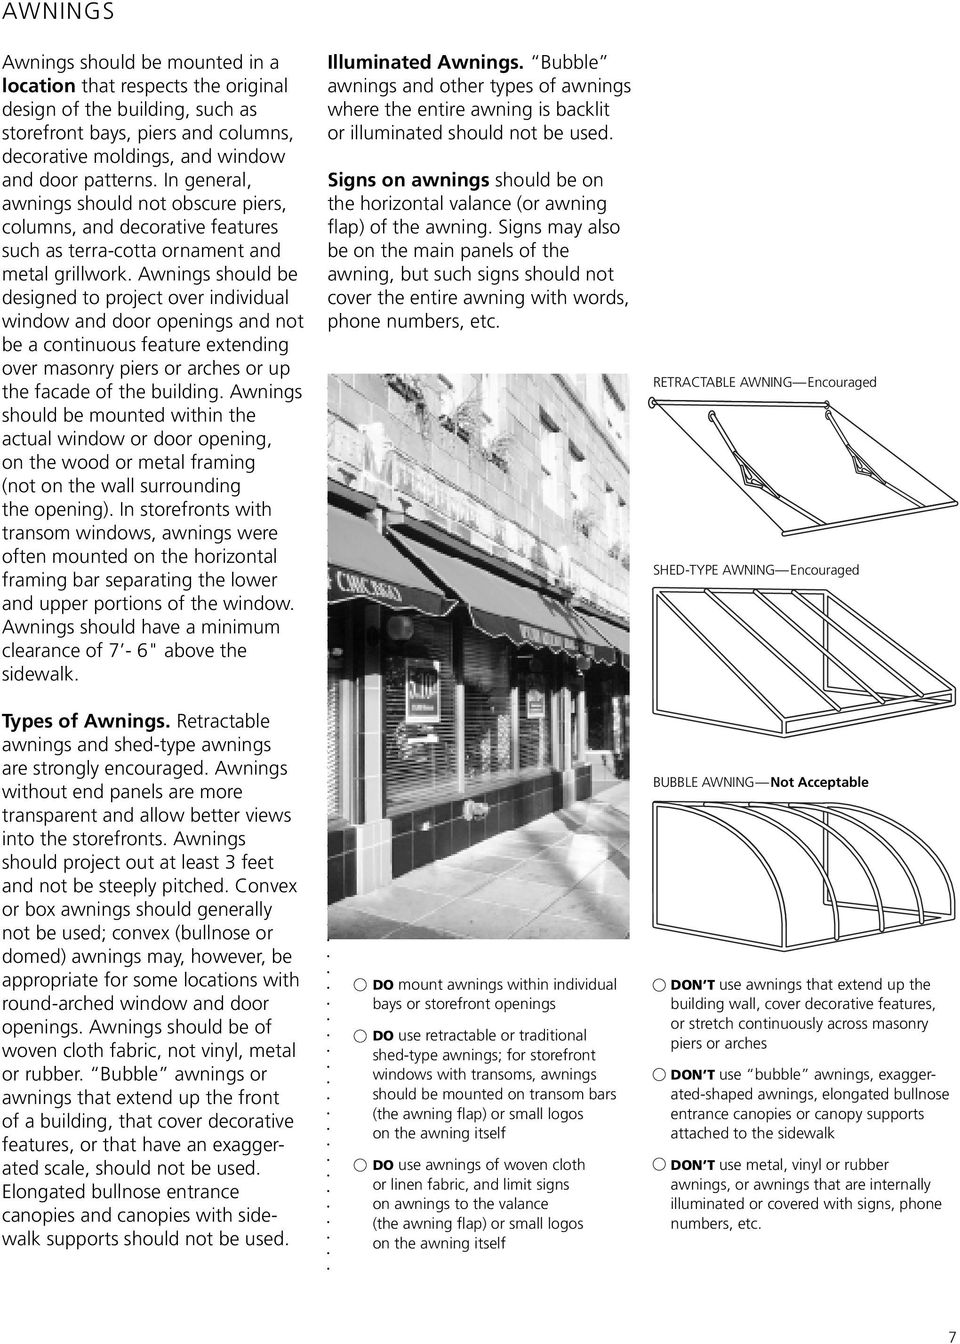 Awnings should be designed to project over individual window and door openings and not be a continuous feature extending over masonry piers or arches or up the facade of the building.